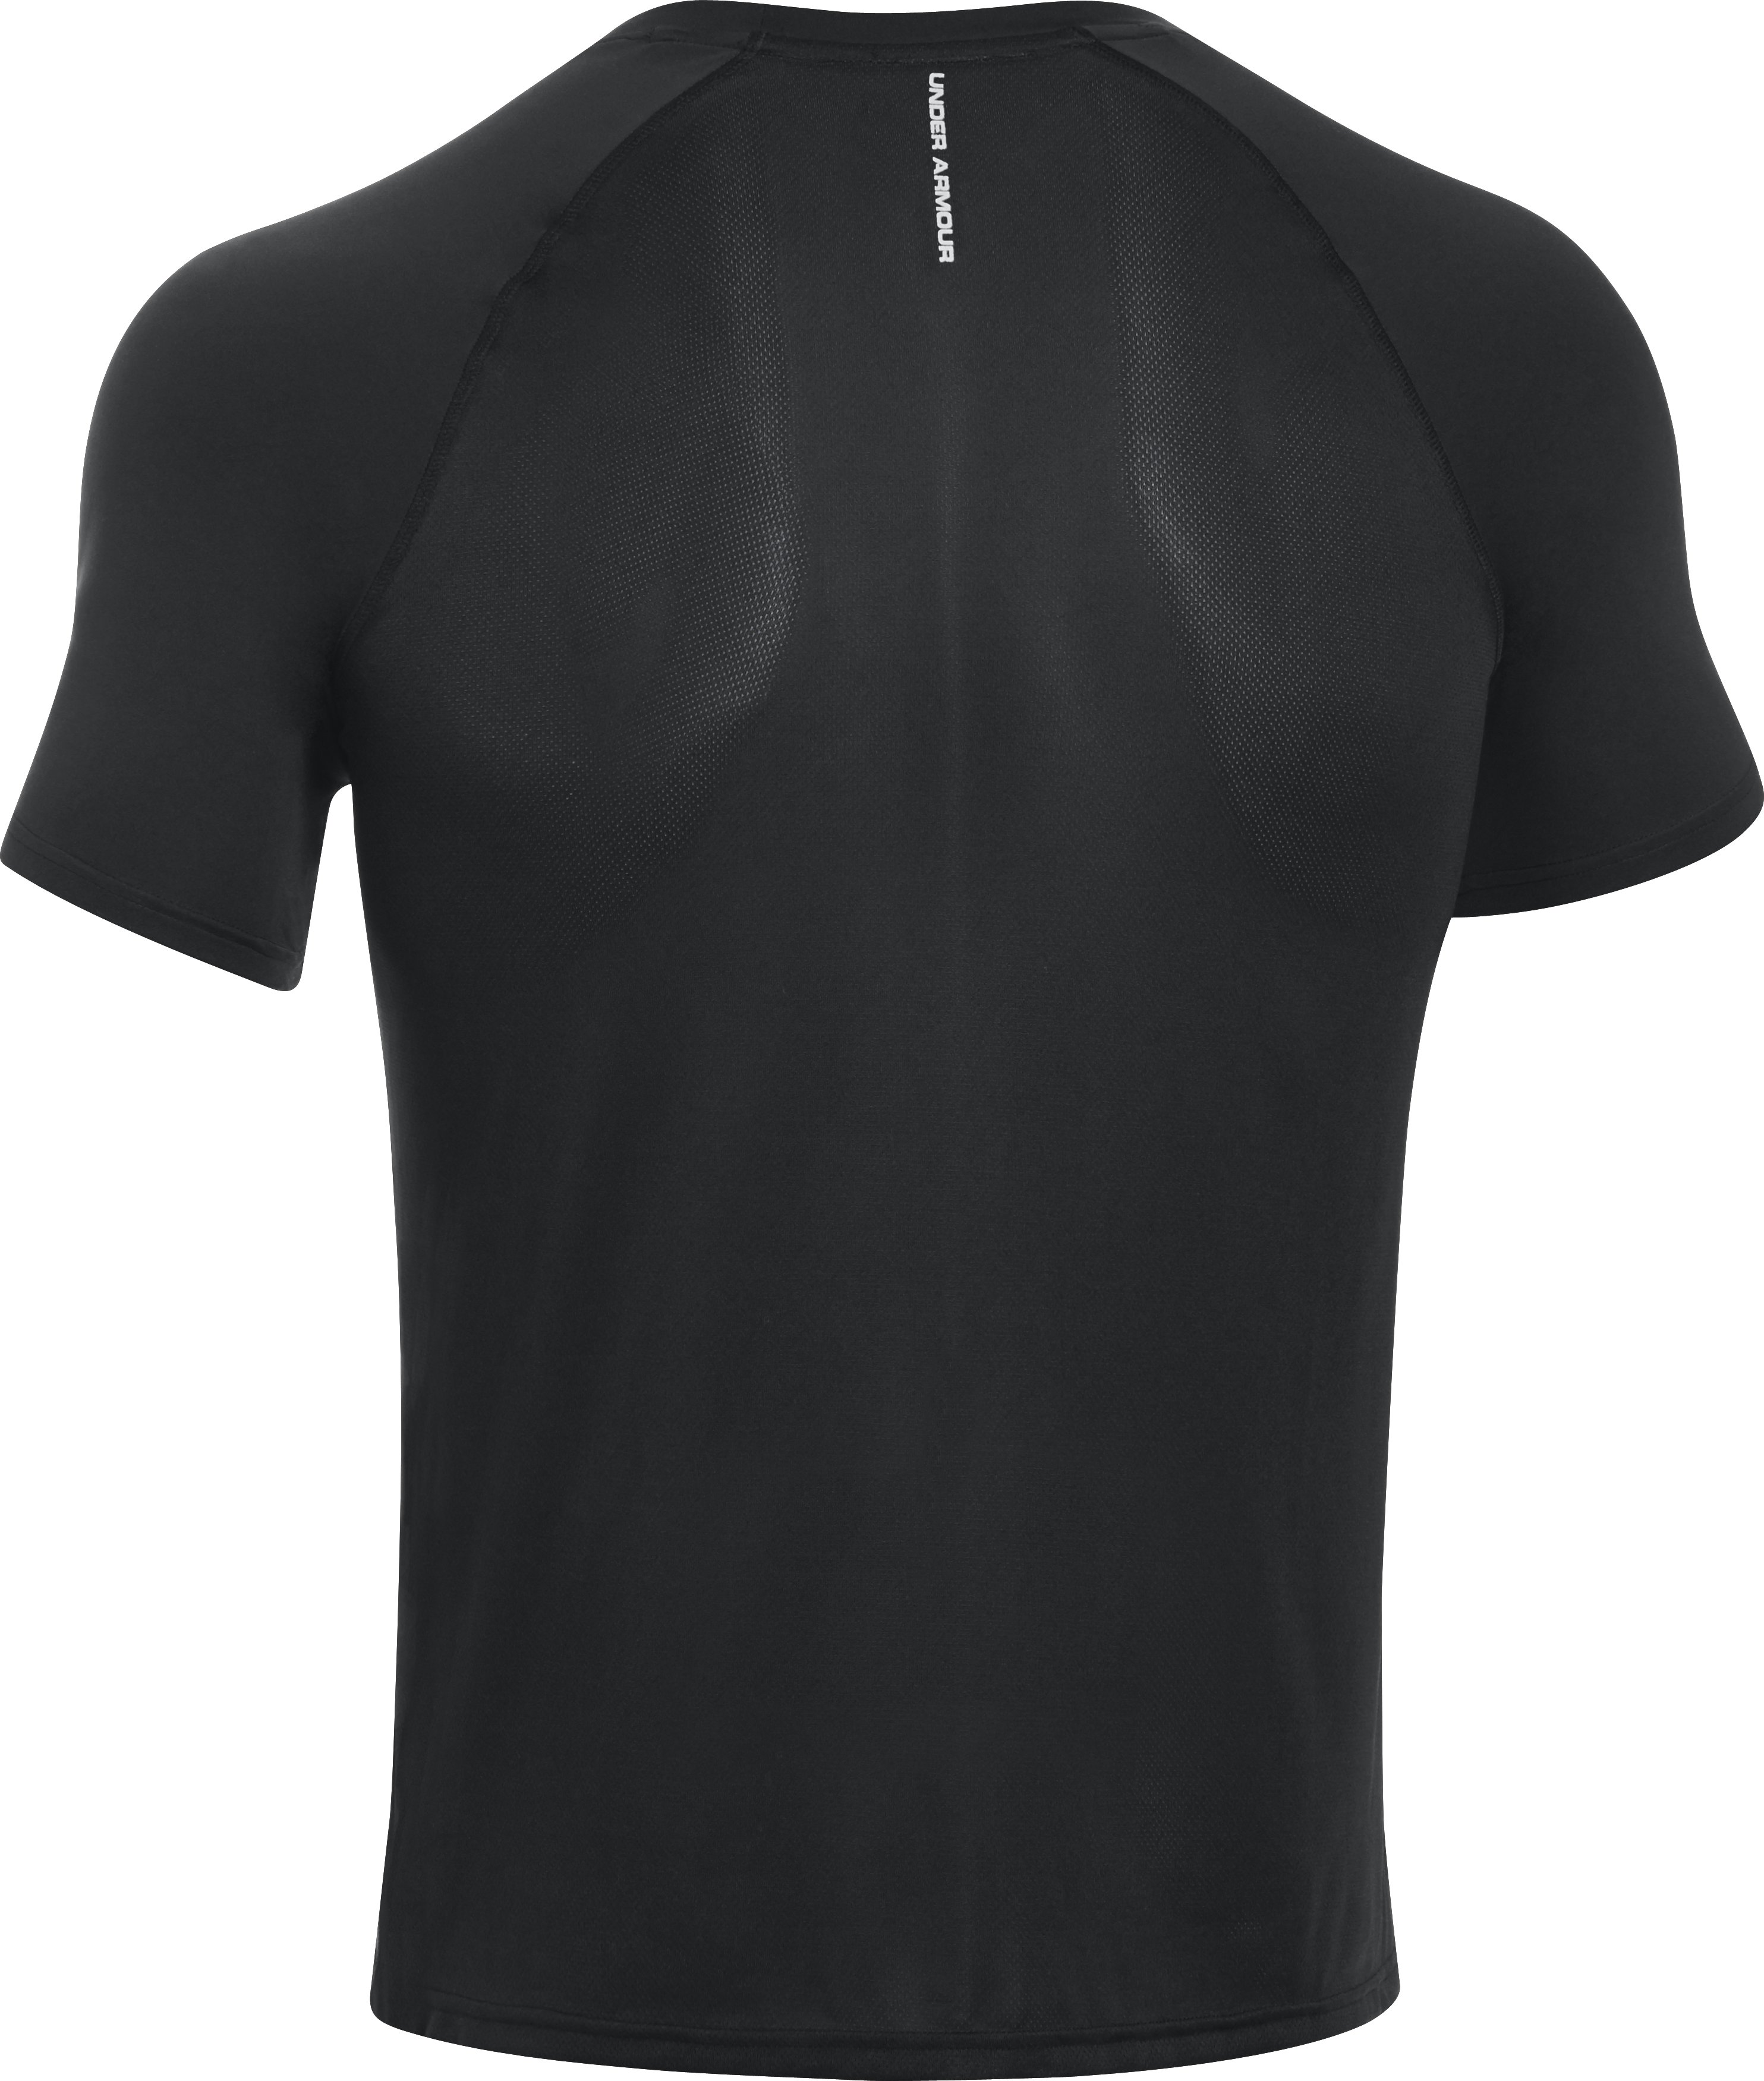 Men's HeatGear® Flyweight Run Short Sleeve, Black